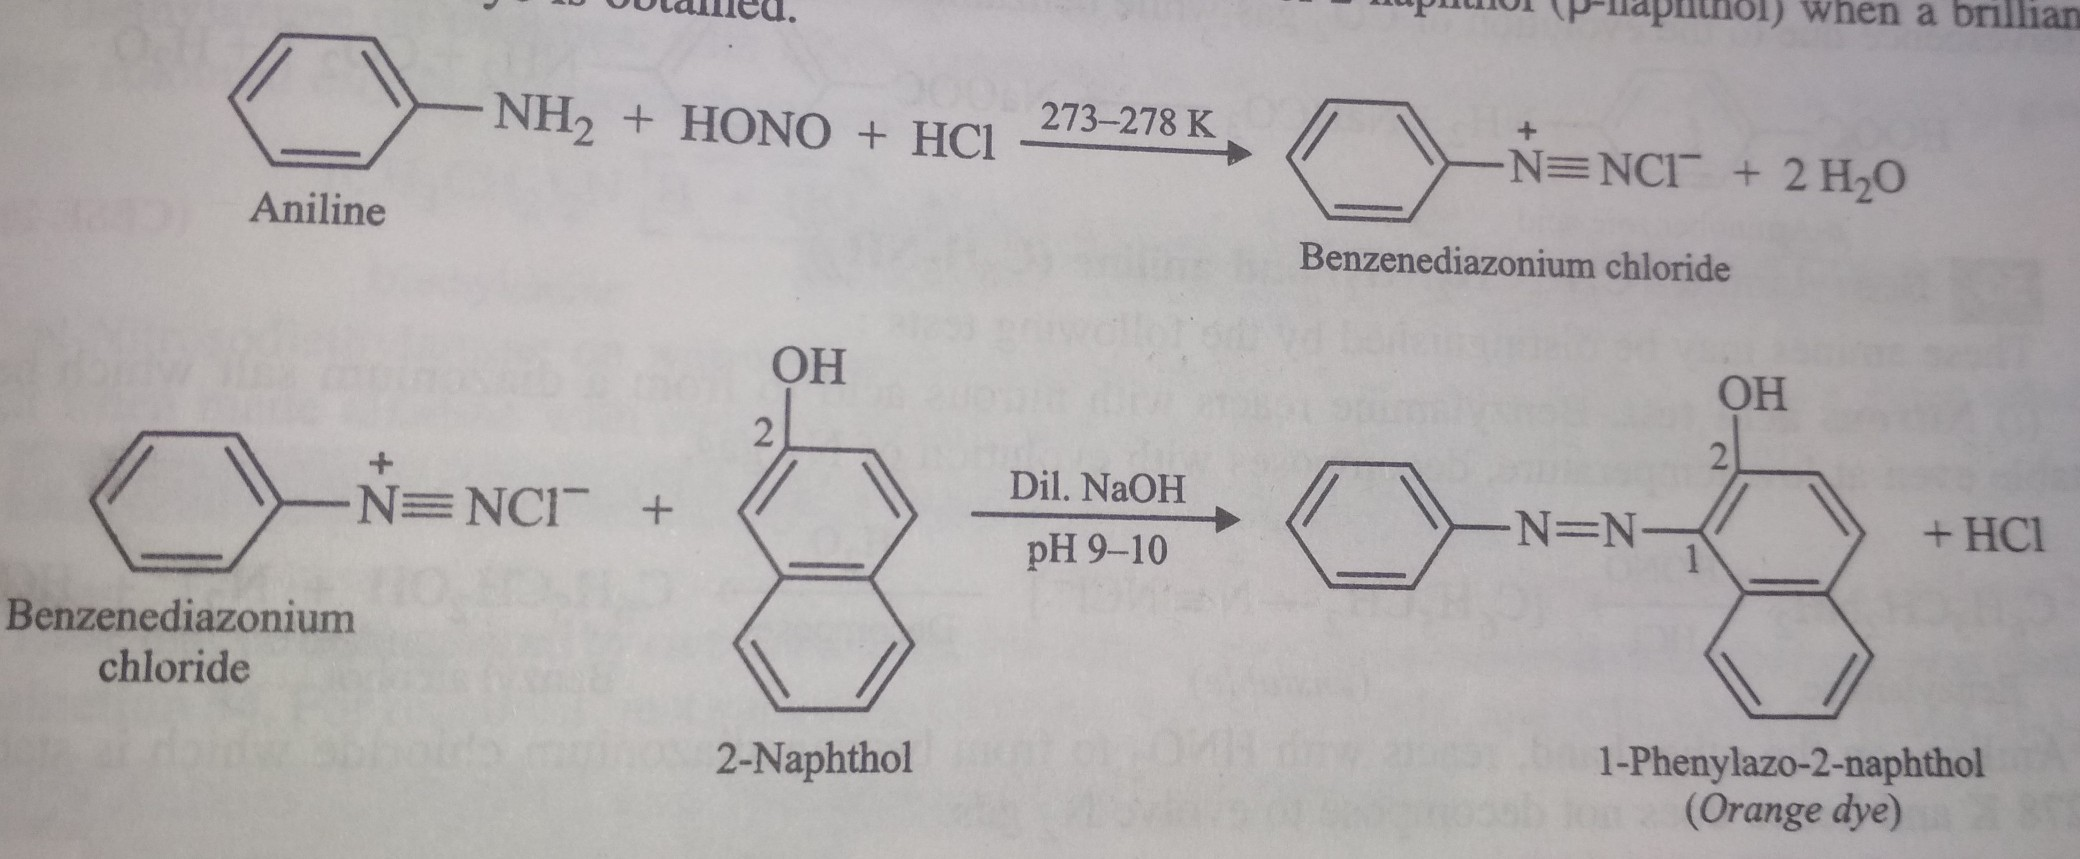 Give one chemical test to distinguish between the following